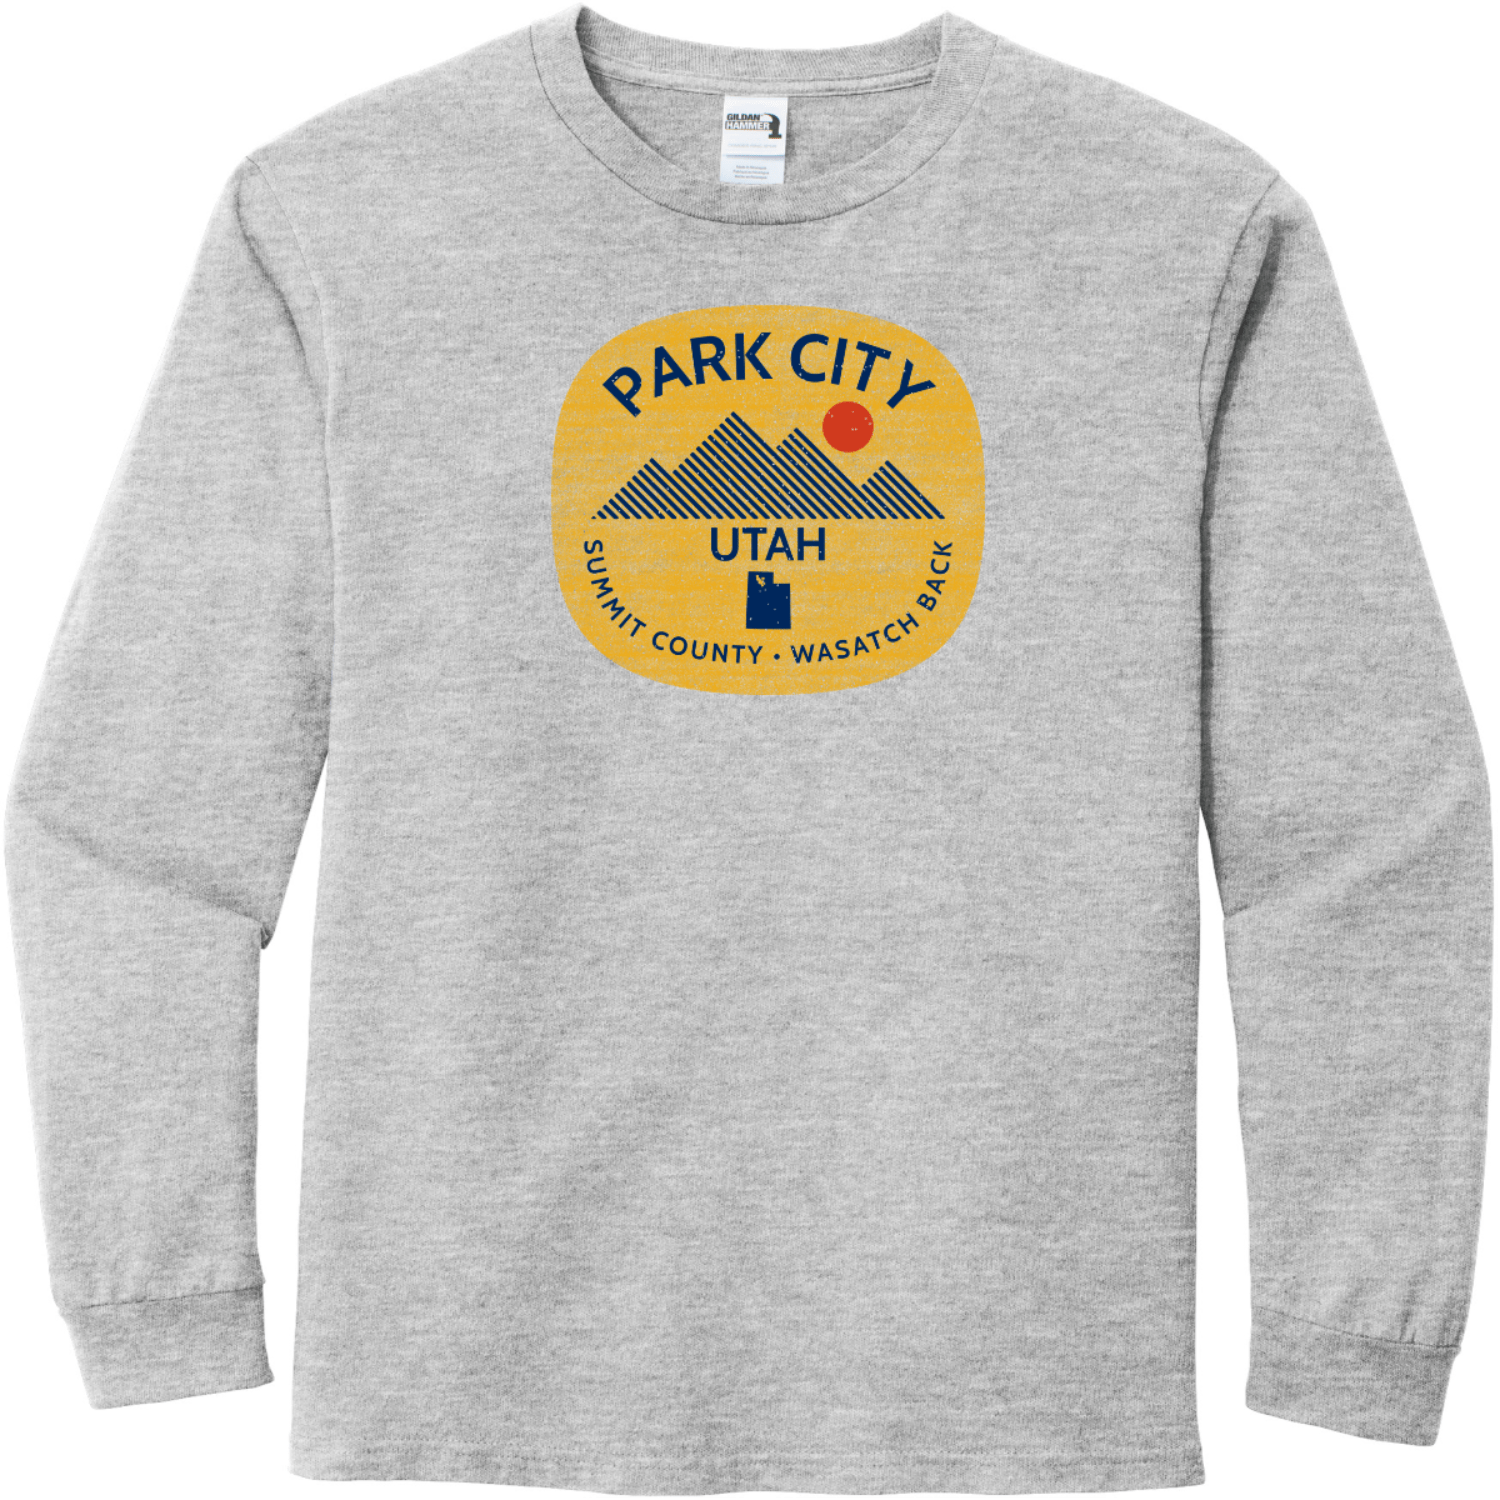 Park City Utah Long Sleeve T-Shirt Sport Gray Gildan Hammer Long Sleeve T Shirt